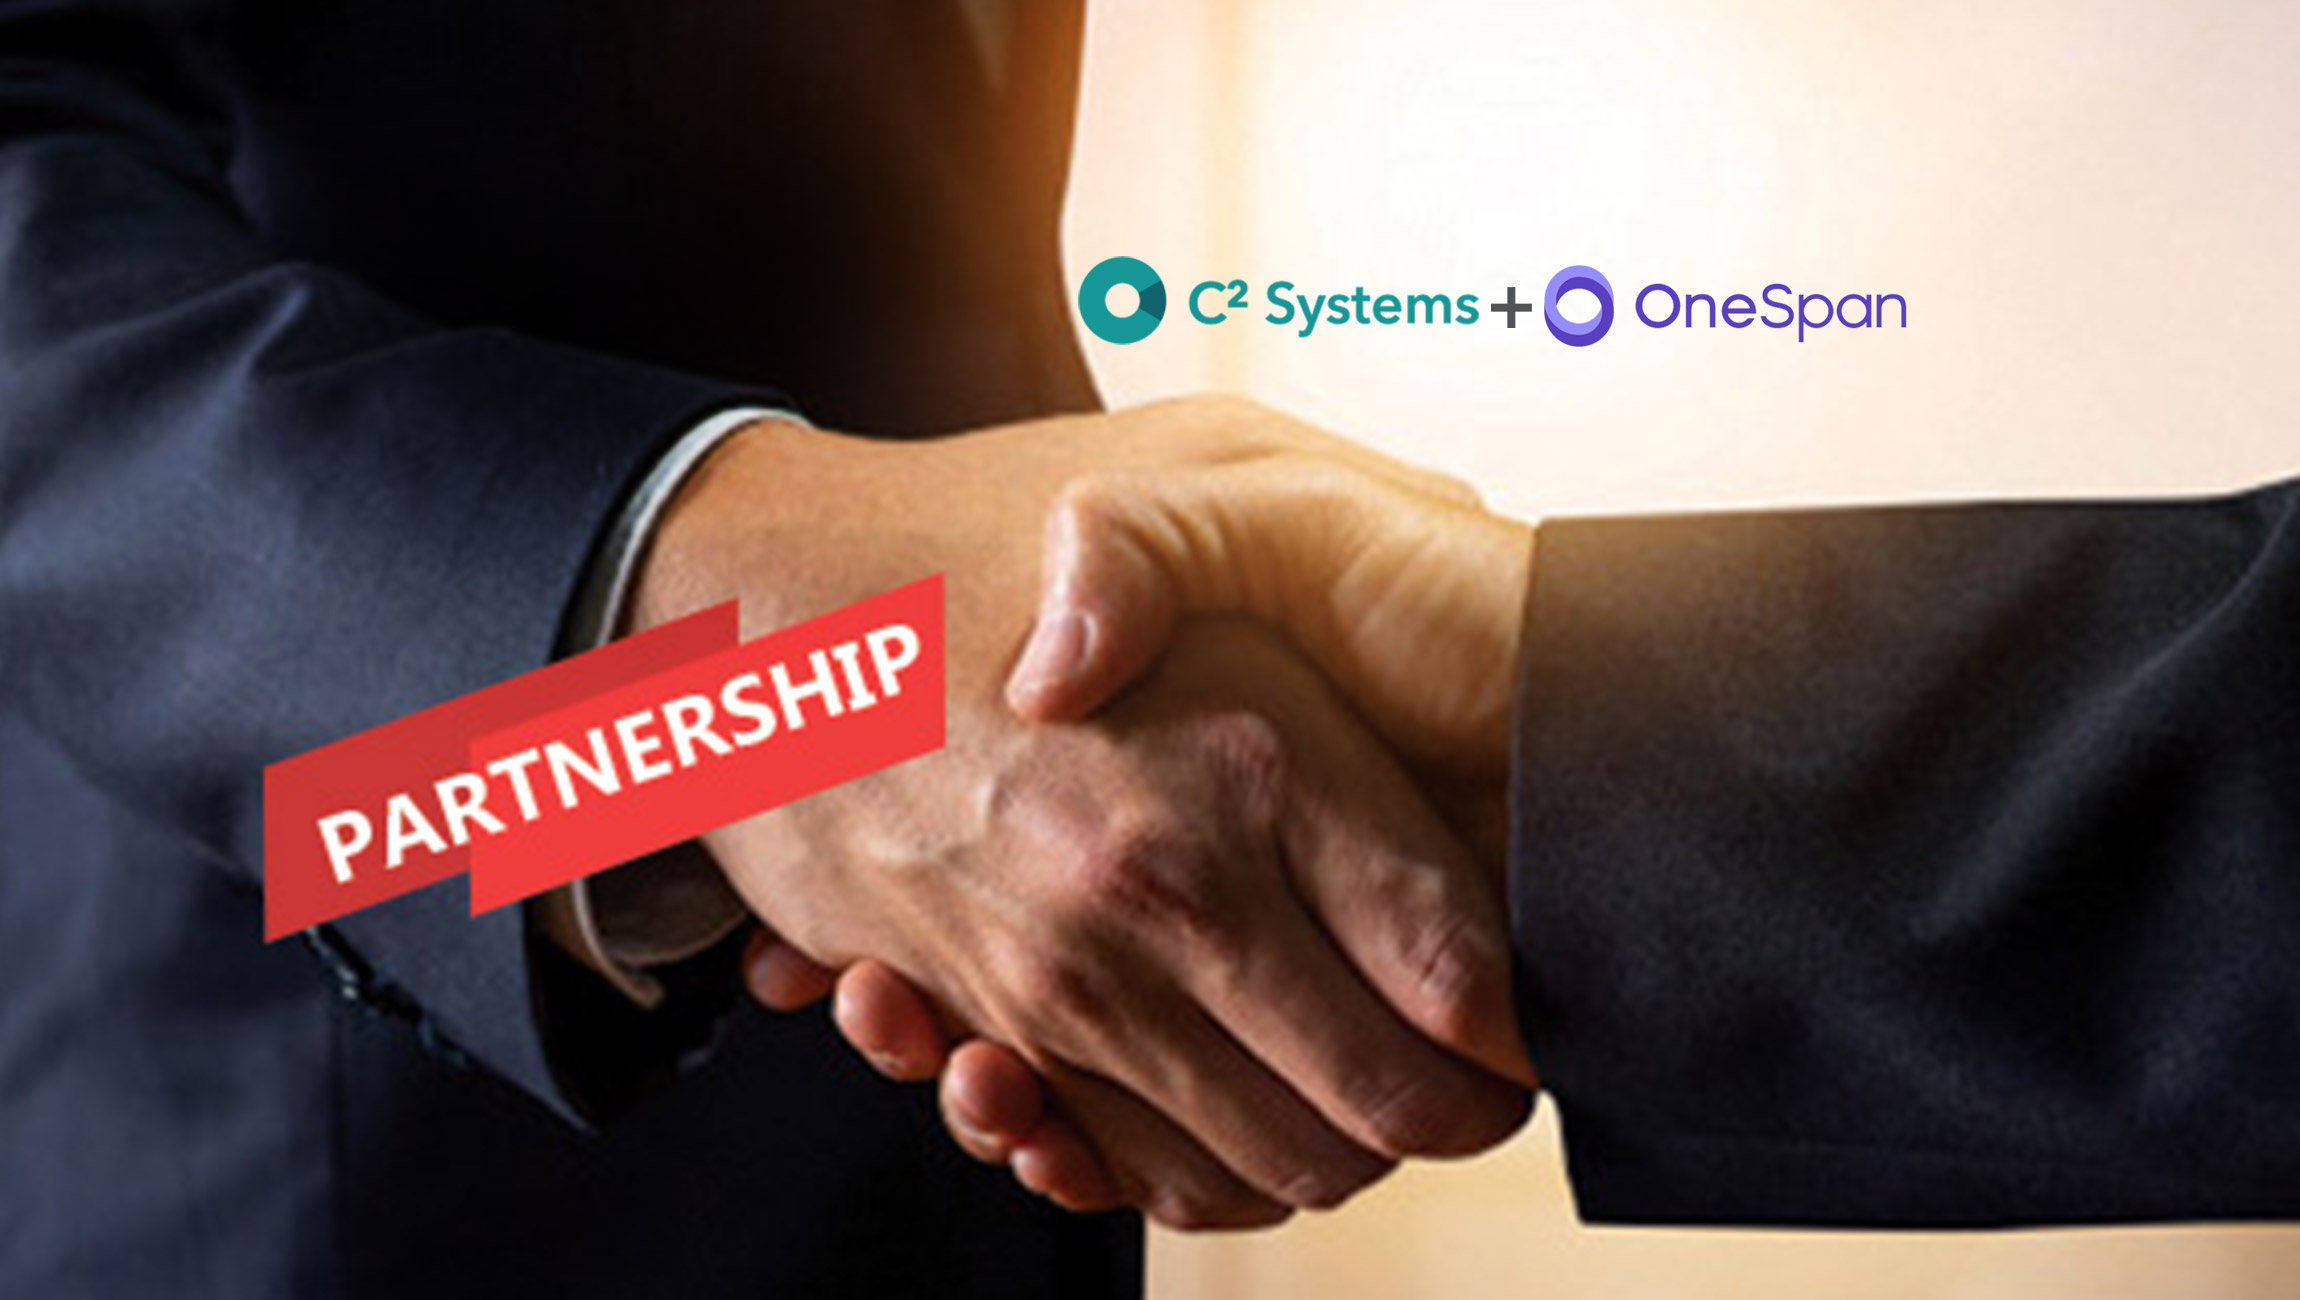 C2 Systems and OneSpan Partner to Digitize Lending and Improve Loan Origination Experience